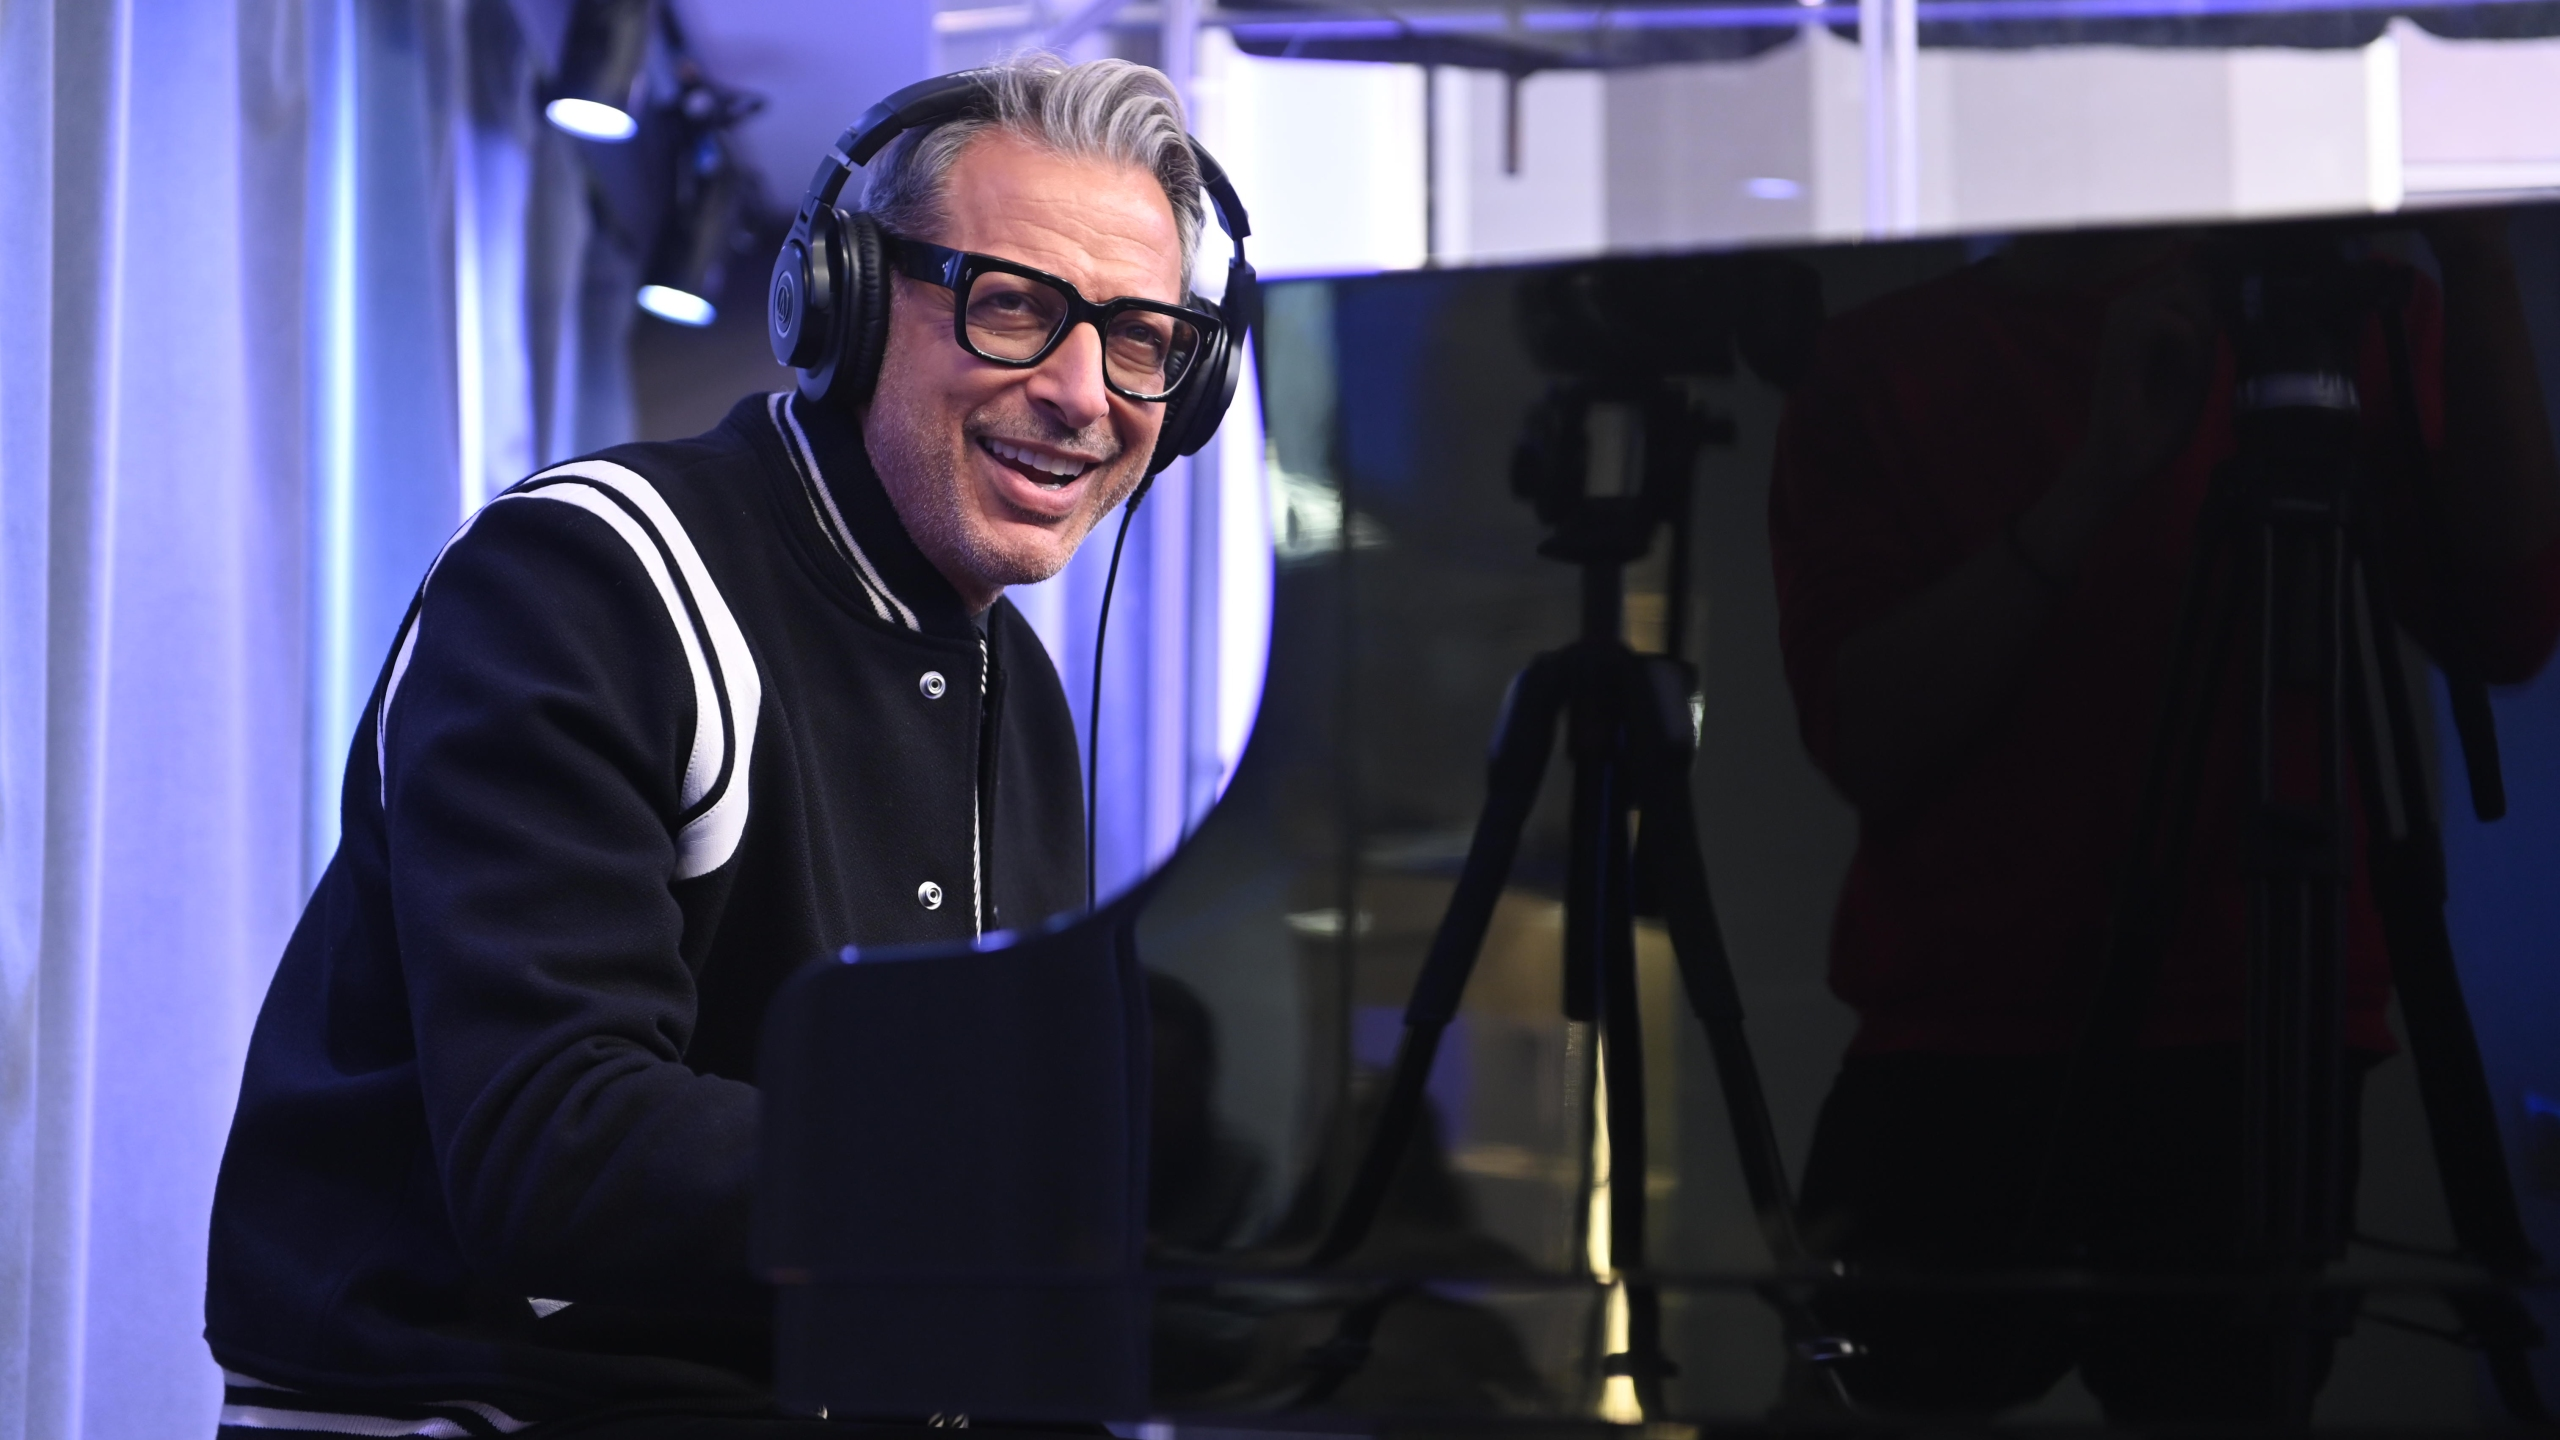 Jeff Goldblum performs with The Mildred Snitzer Orchestra on SiriusXM's Real Jazz Channel at The SiriusXM Studios in New York City on November 11, 2019 in New York City. (Noam Galai/Getty Images for SiriusXM)